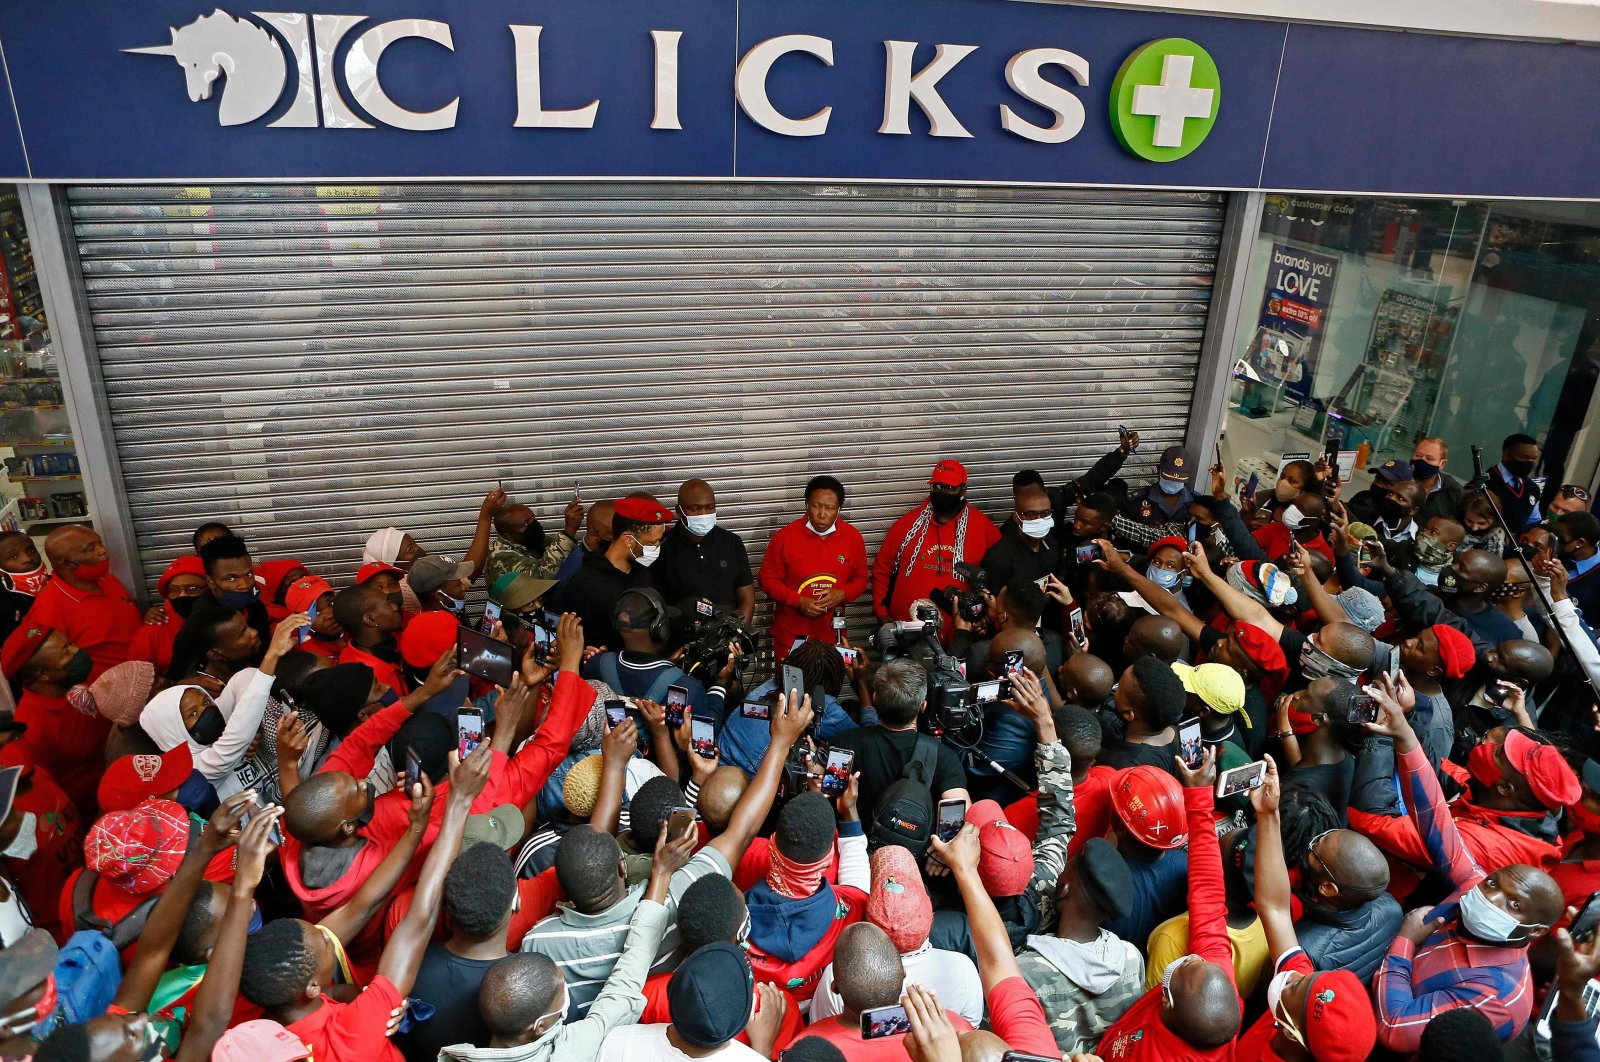 Economic Freedom Fighters (EFF) leader Julius Malema (C) addresses his supporters during a picket outside Clicks Store at the Mall of the North in Polokwane, Sept. 7, 2020. (AFP Photo)